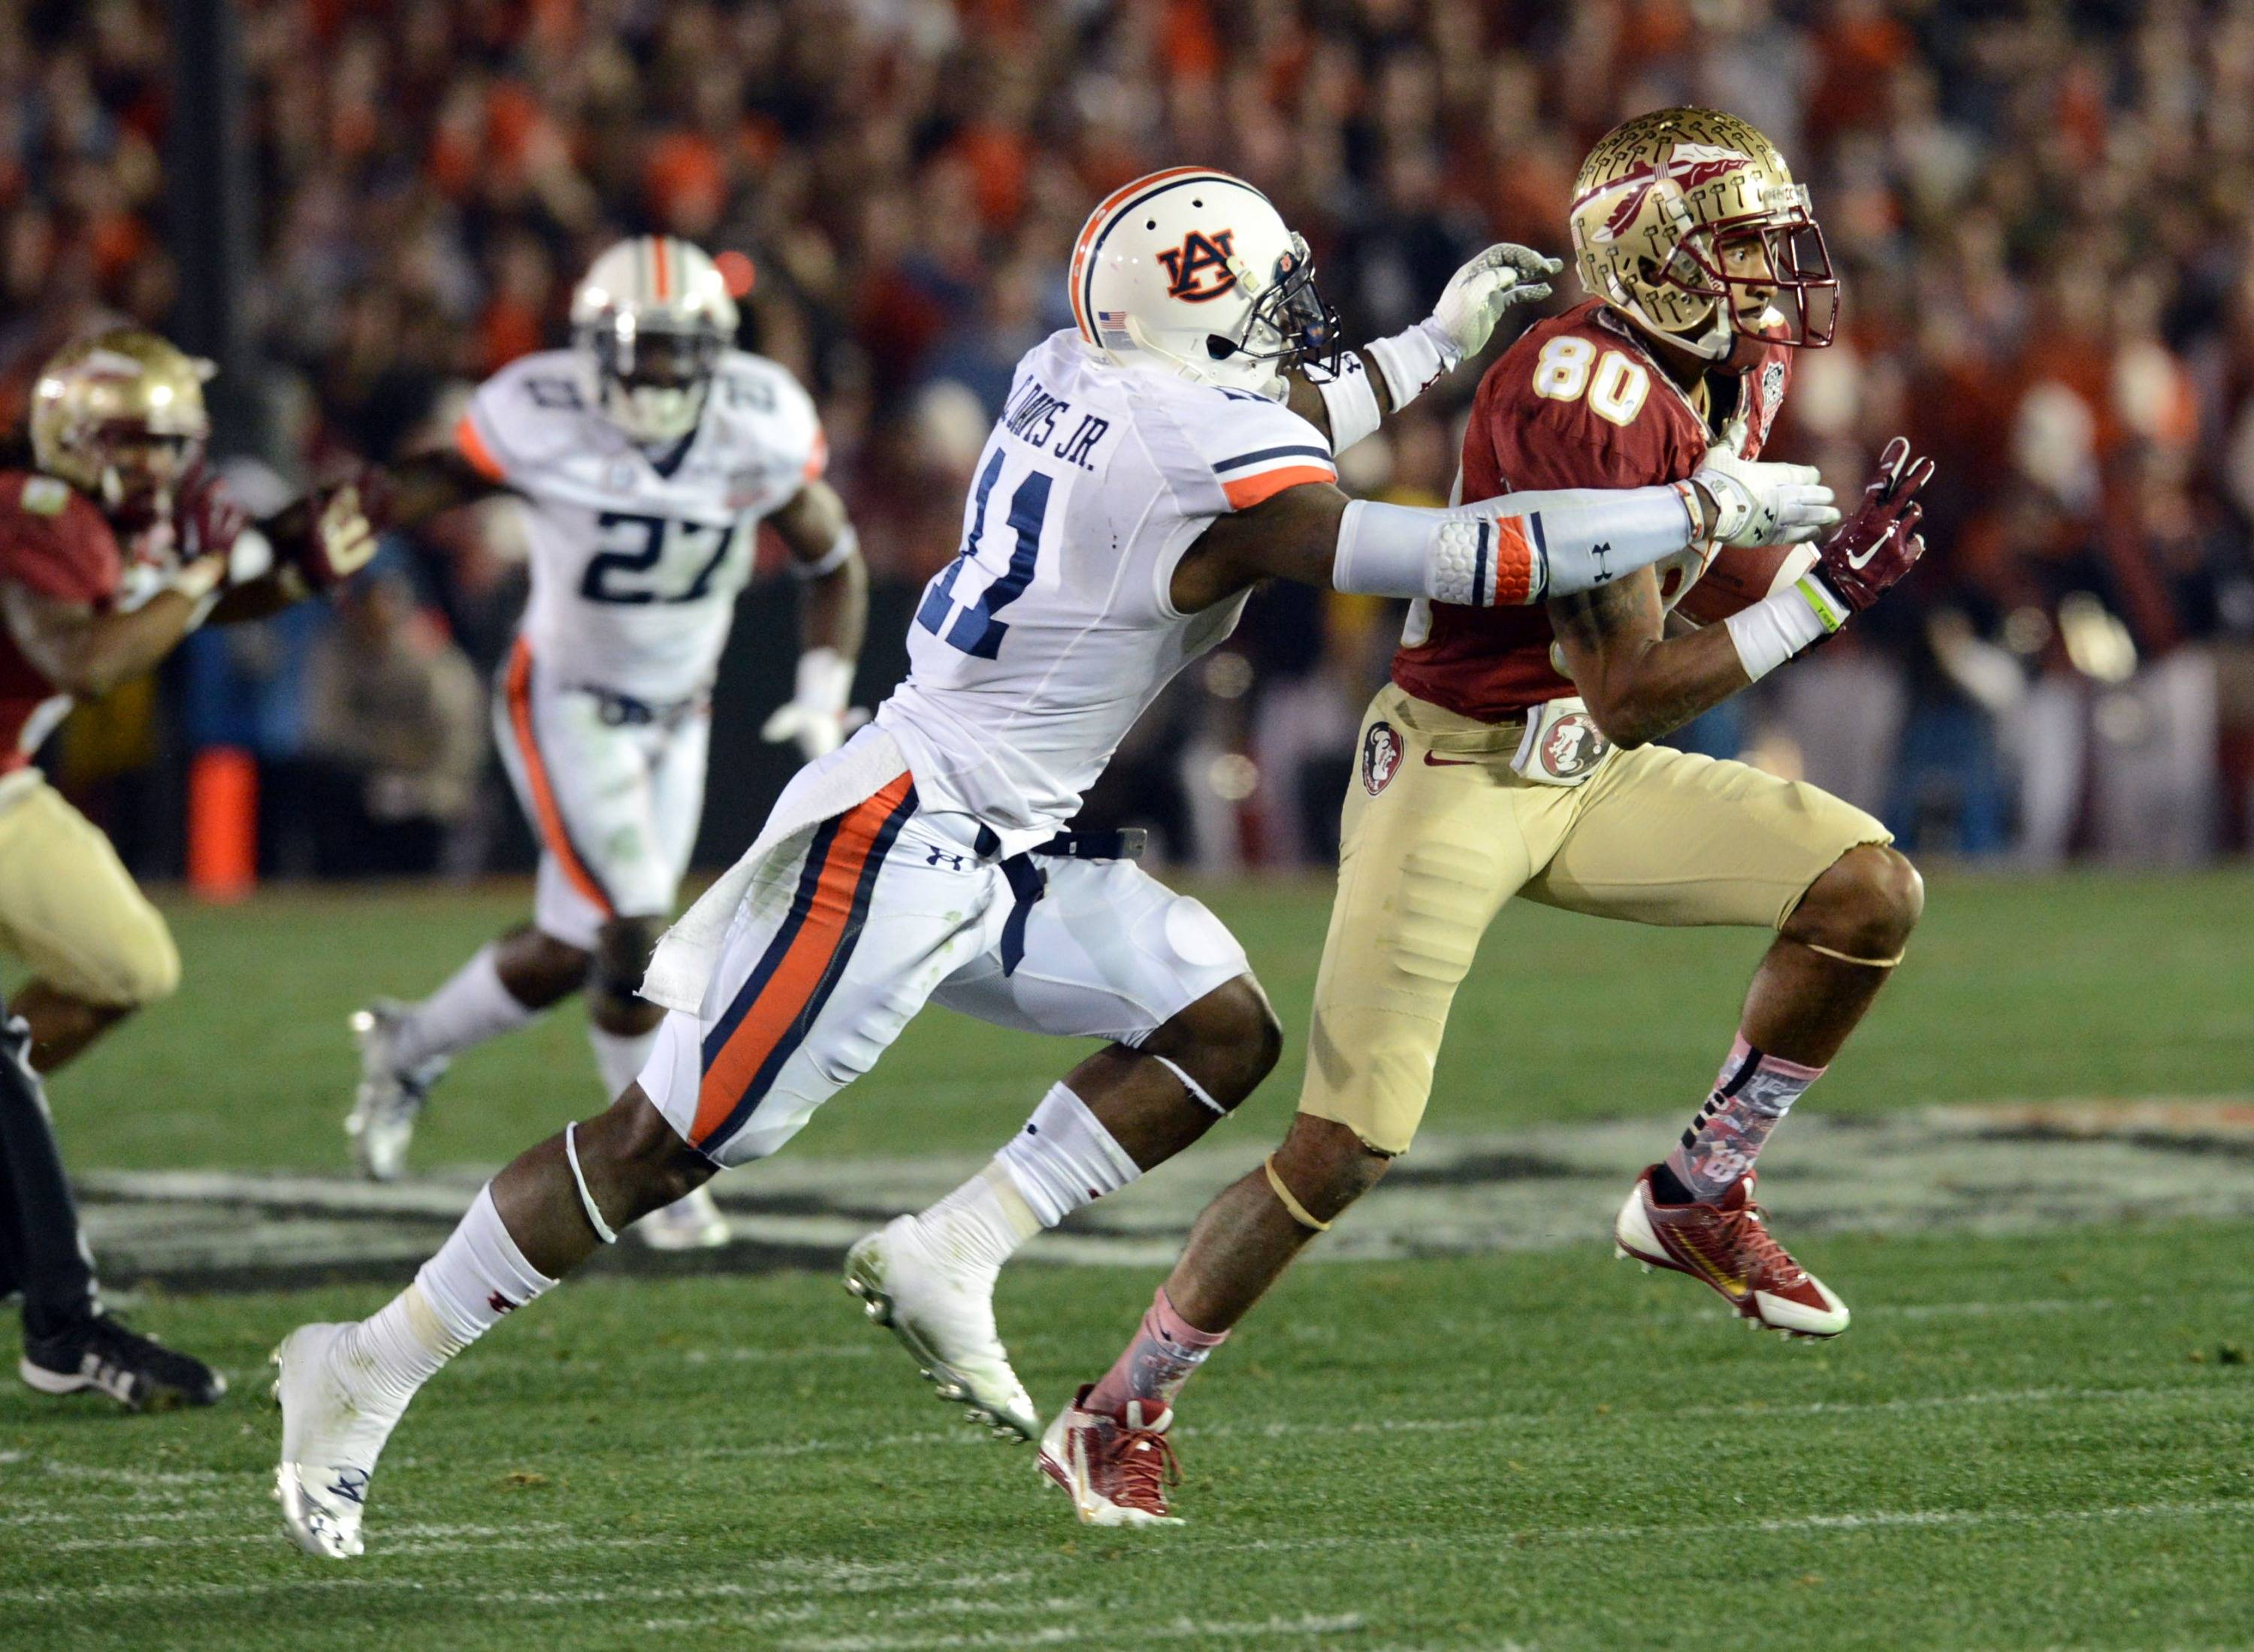 Jan 6, 2014; Pasadena, CA, USA; Florida State Seminoles wide receiver Rashad Greene (80) is tackled by Auburn Tigers cornerback Chris Davis (11) during the first half of the 2014 BCS National Championship game at the Rose Bowl.  Mandatory Credit: Jayne Kamin-Oncea-USA TODAY Sports